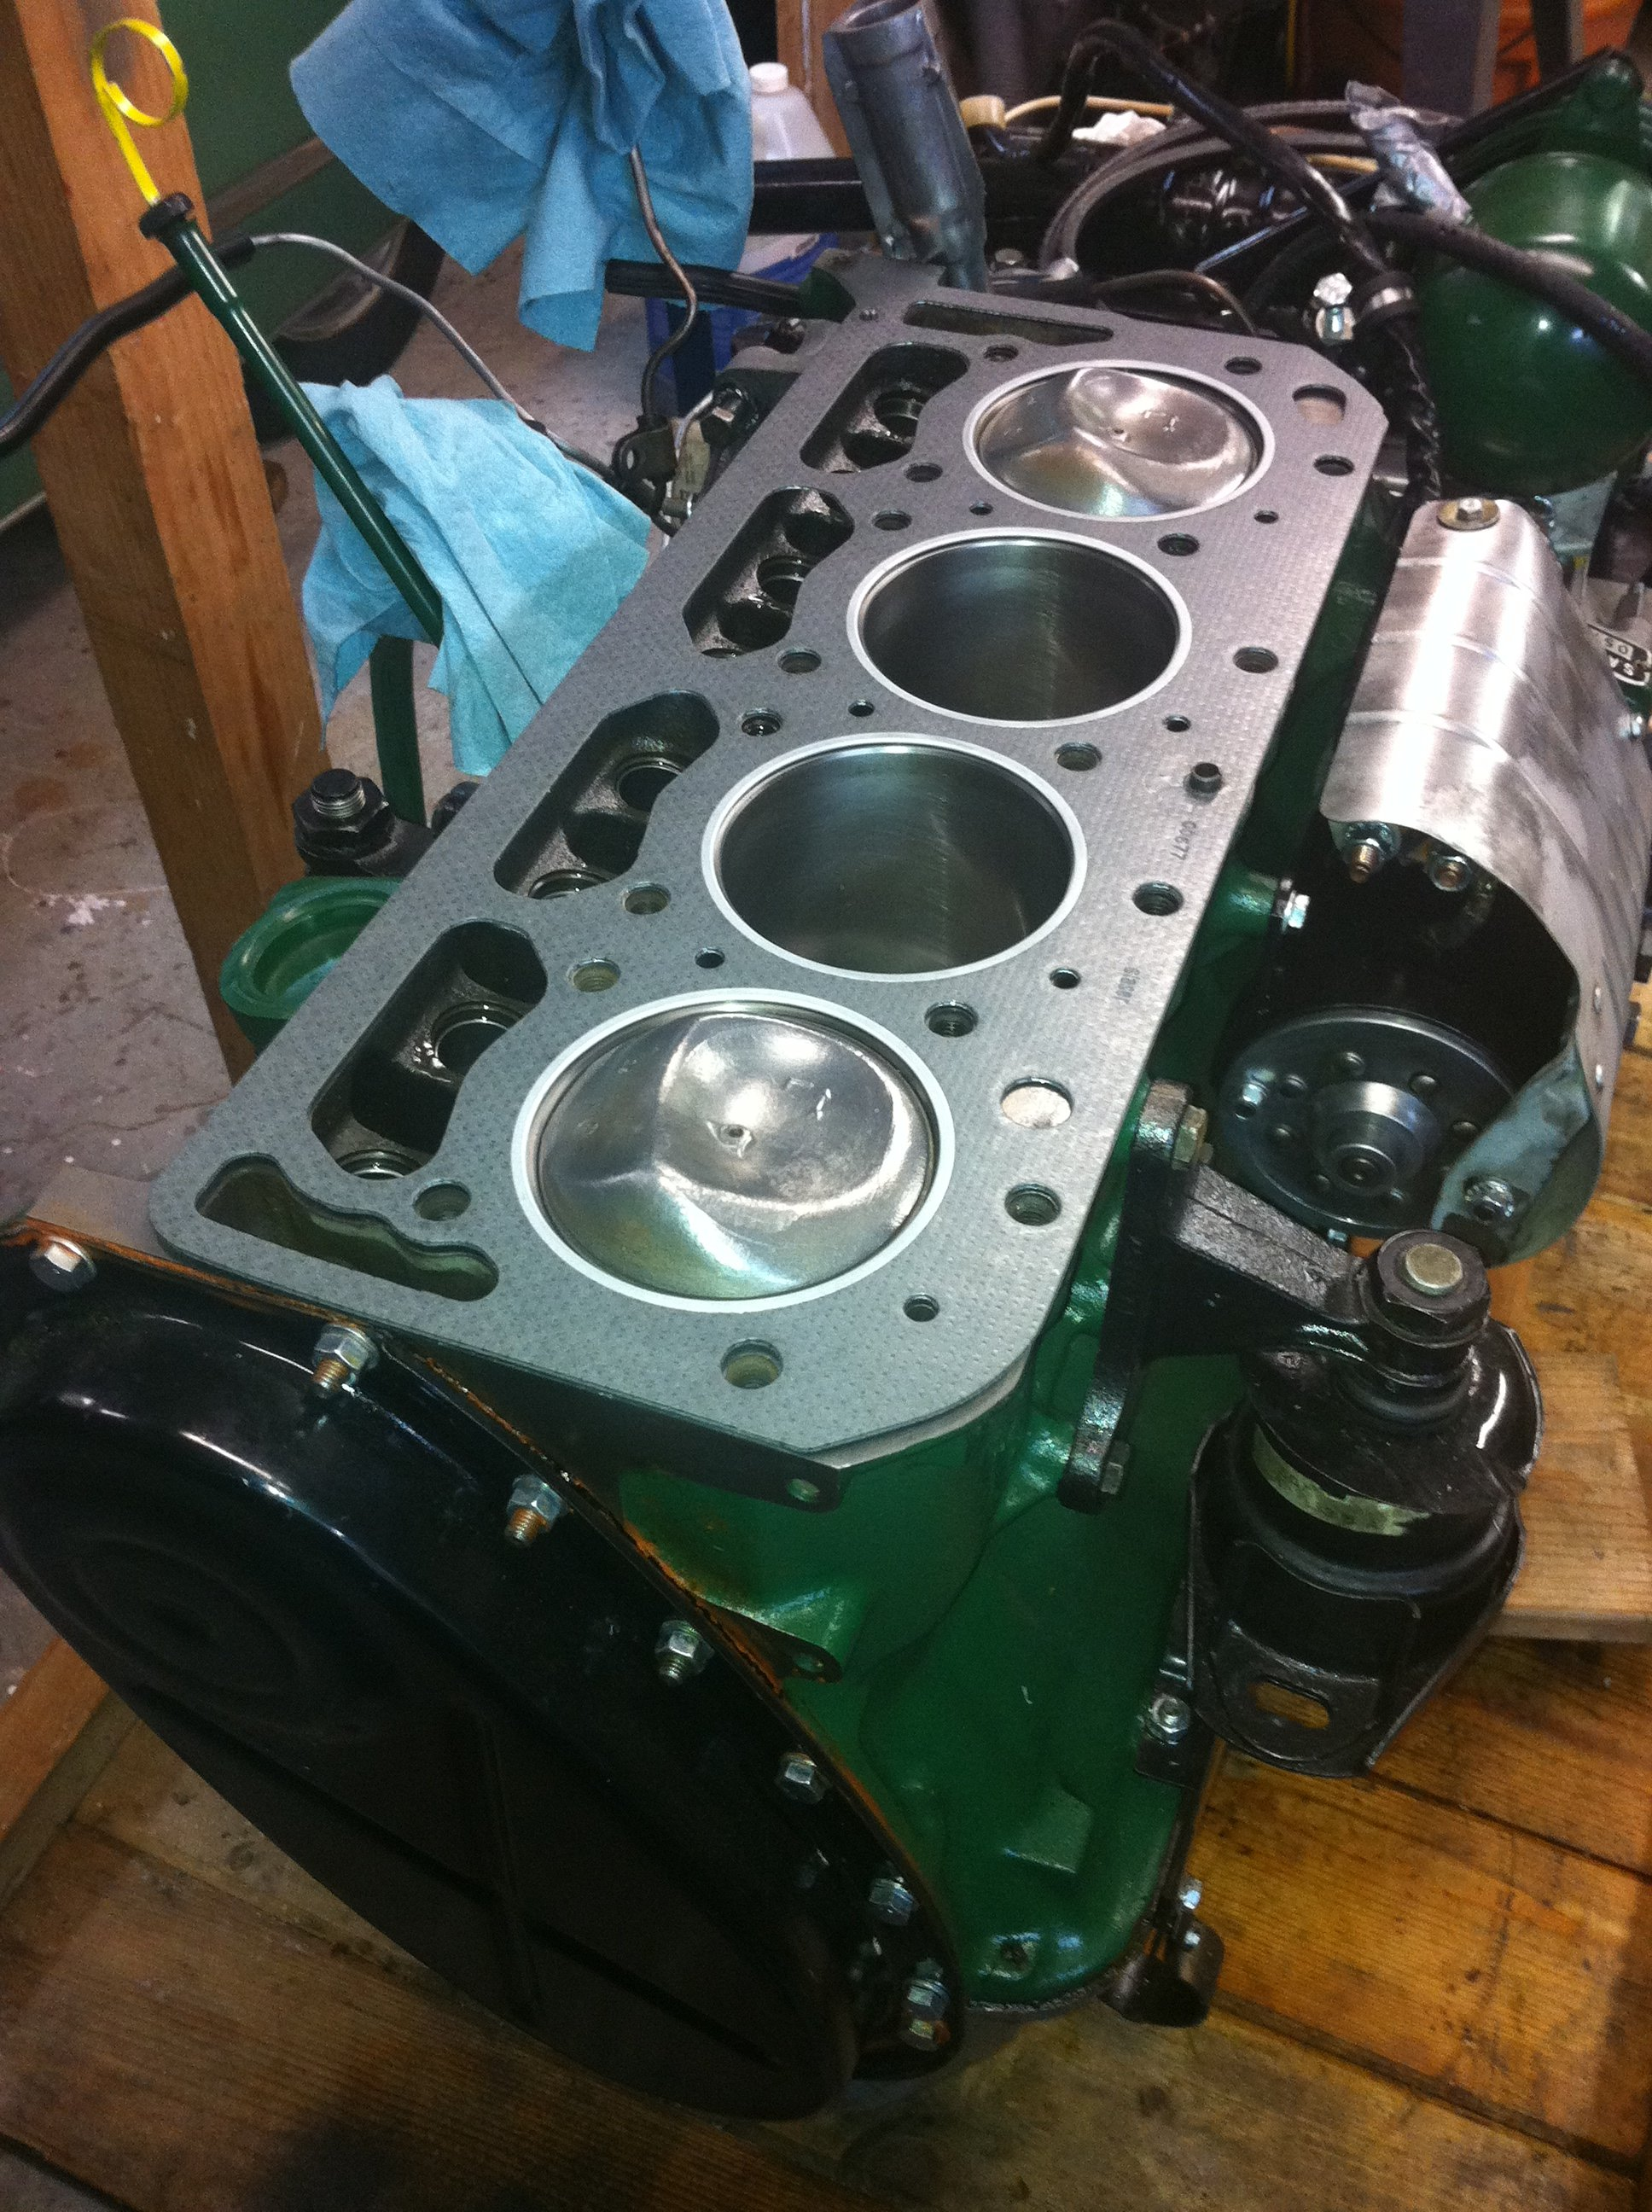 January 4, the new head gasket arrives, time for reassembly